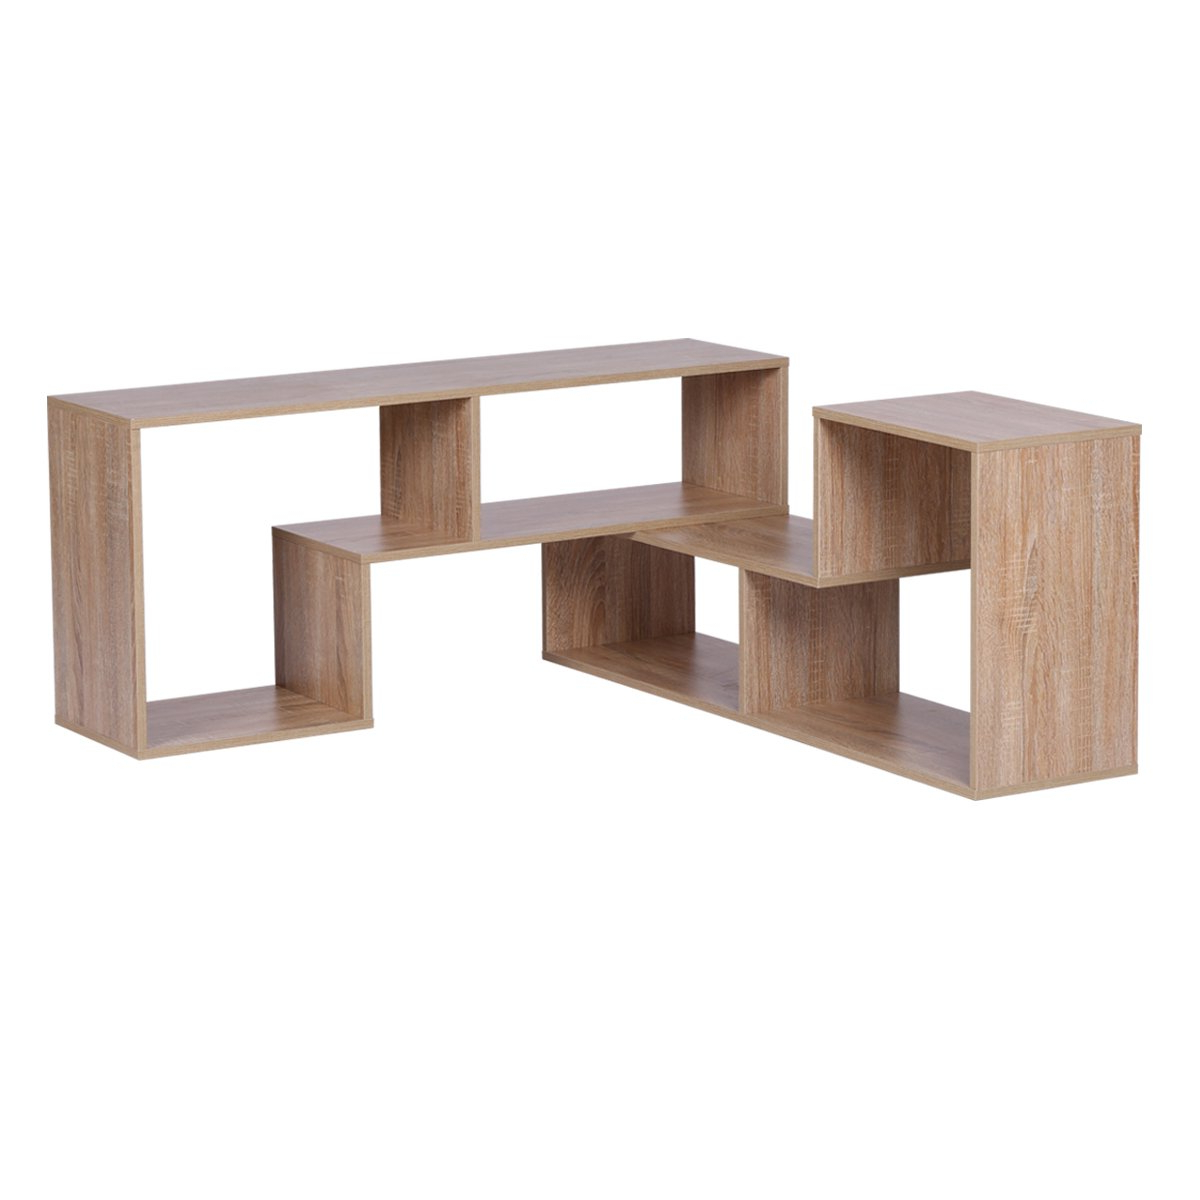 Famous Devaise Versatile Wood Tv Stand/bookcase/storage Shelf; 24mm Thickness, Oak Regarding Orford Standard Bookcases (View 20 of 20)